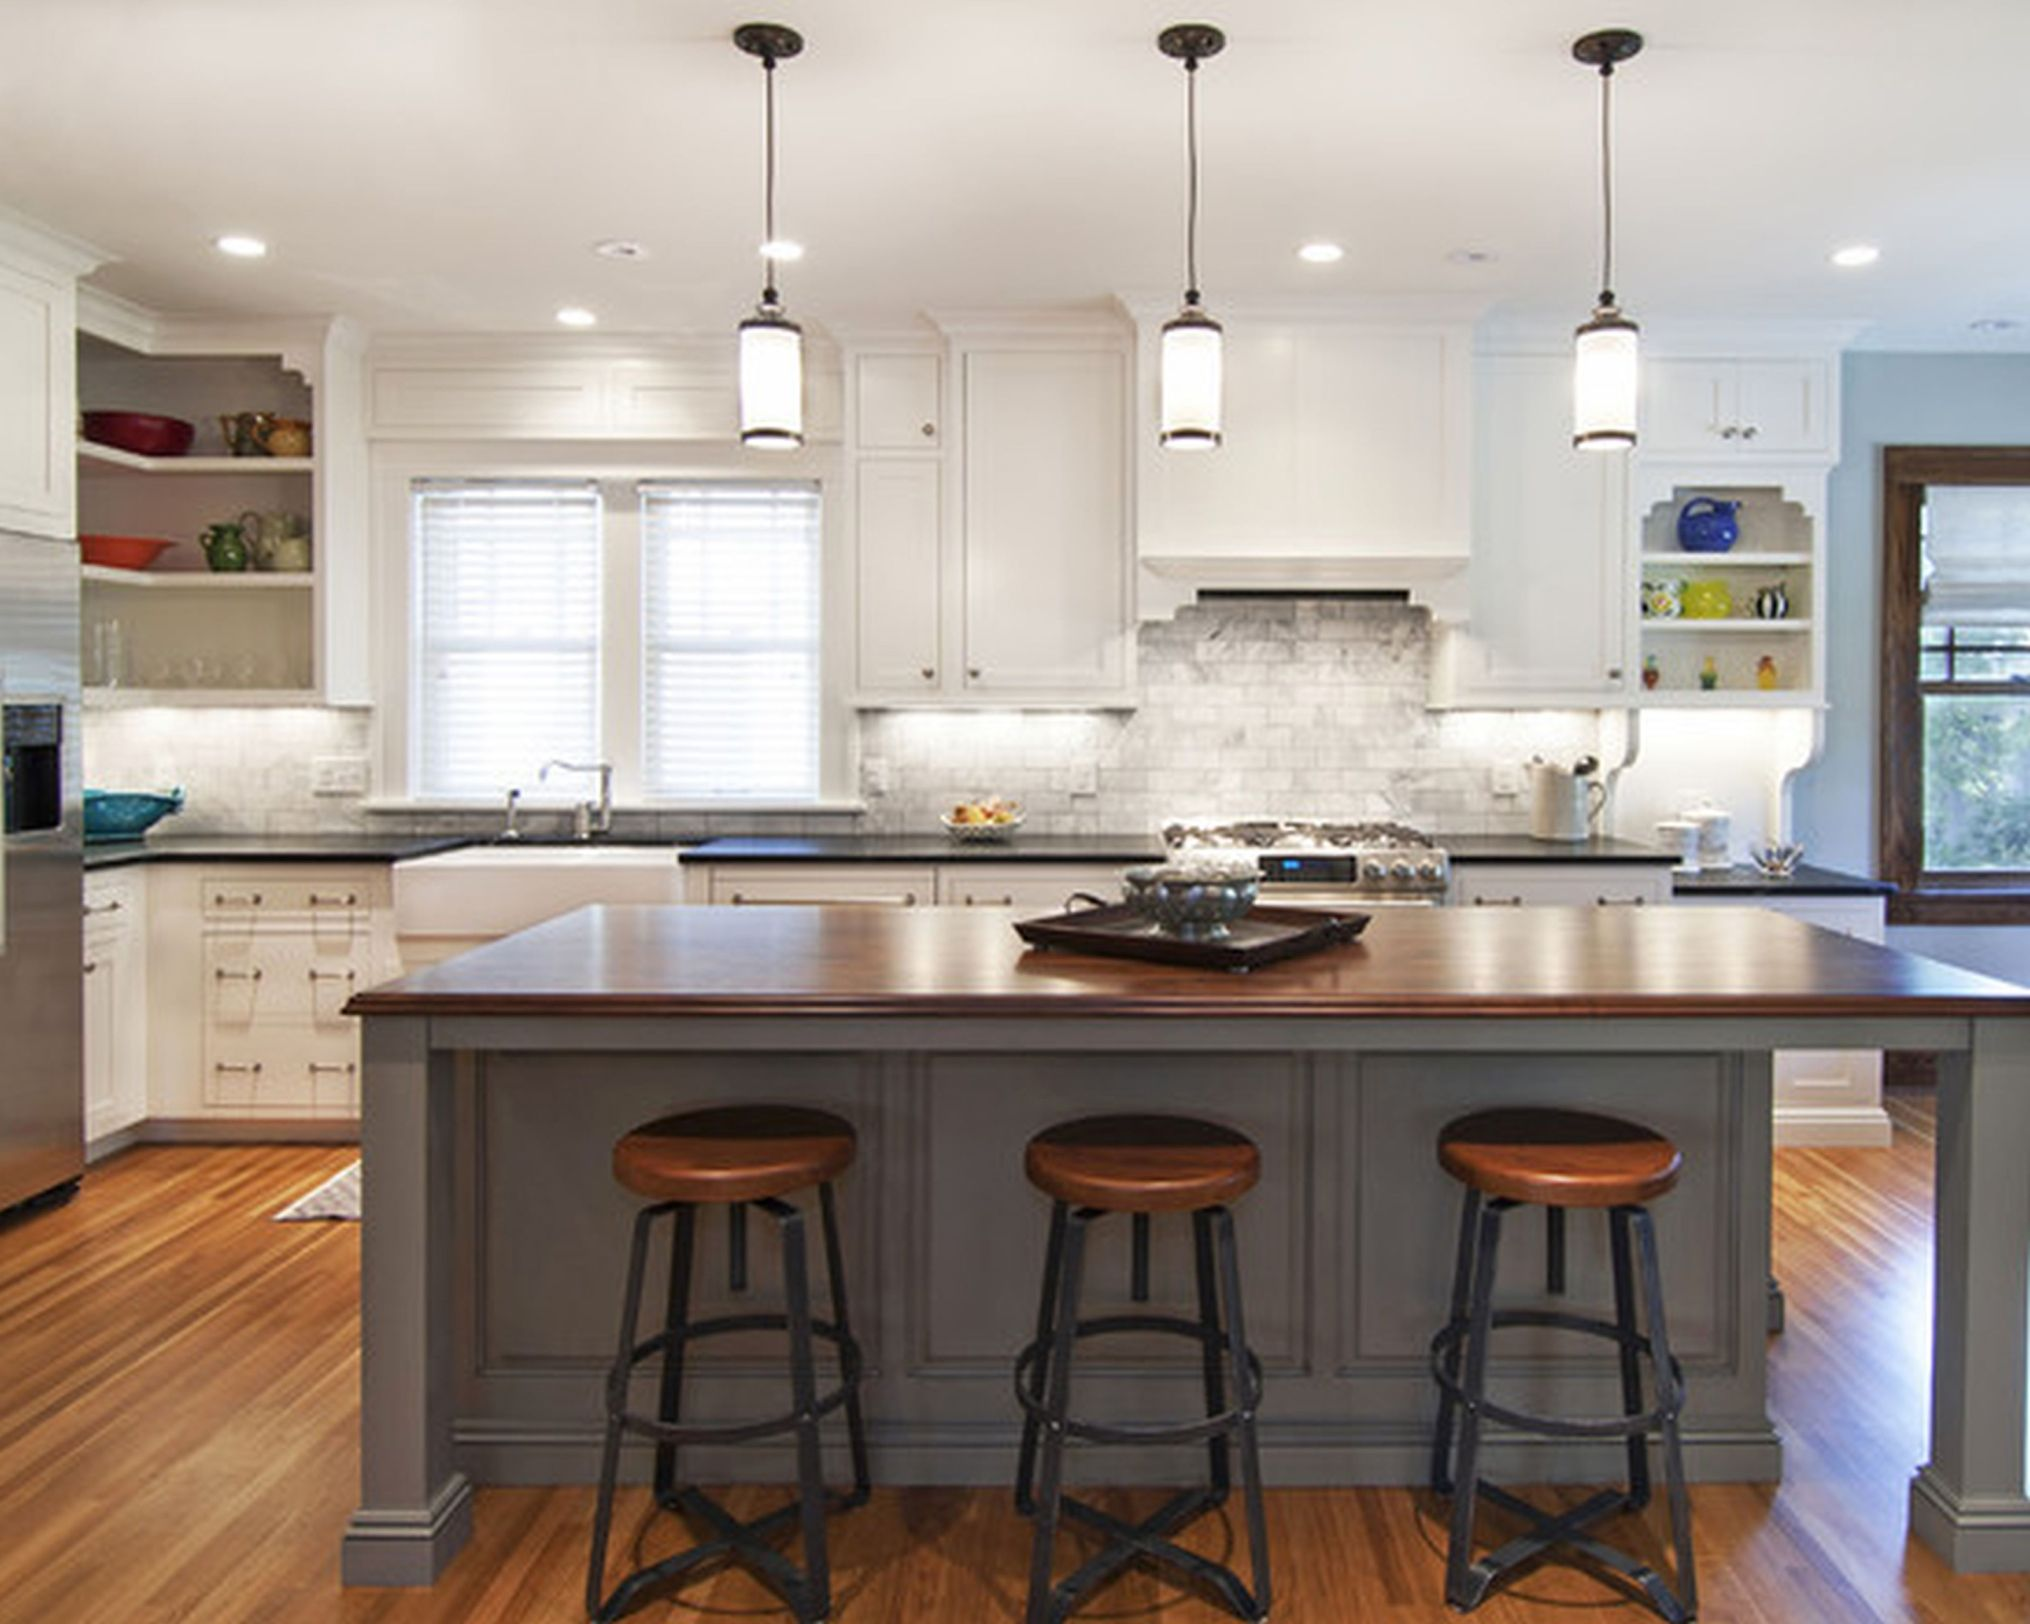 Grey And White Kitchen With Island white-kitchen-cabinets-bay-window-pendant-lights-over-kitchen